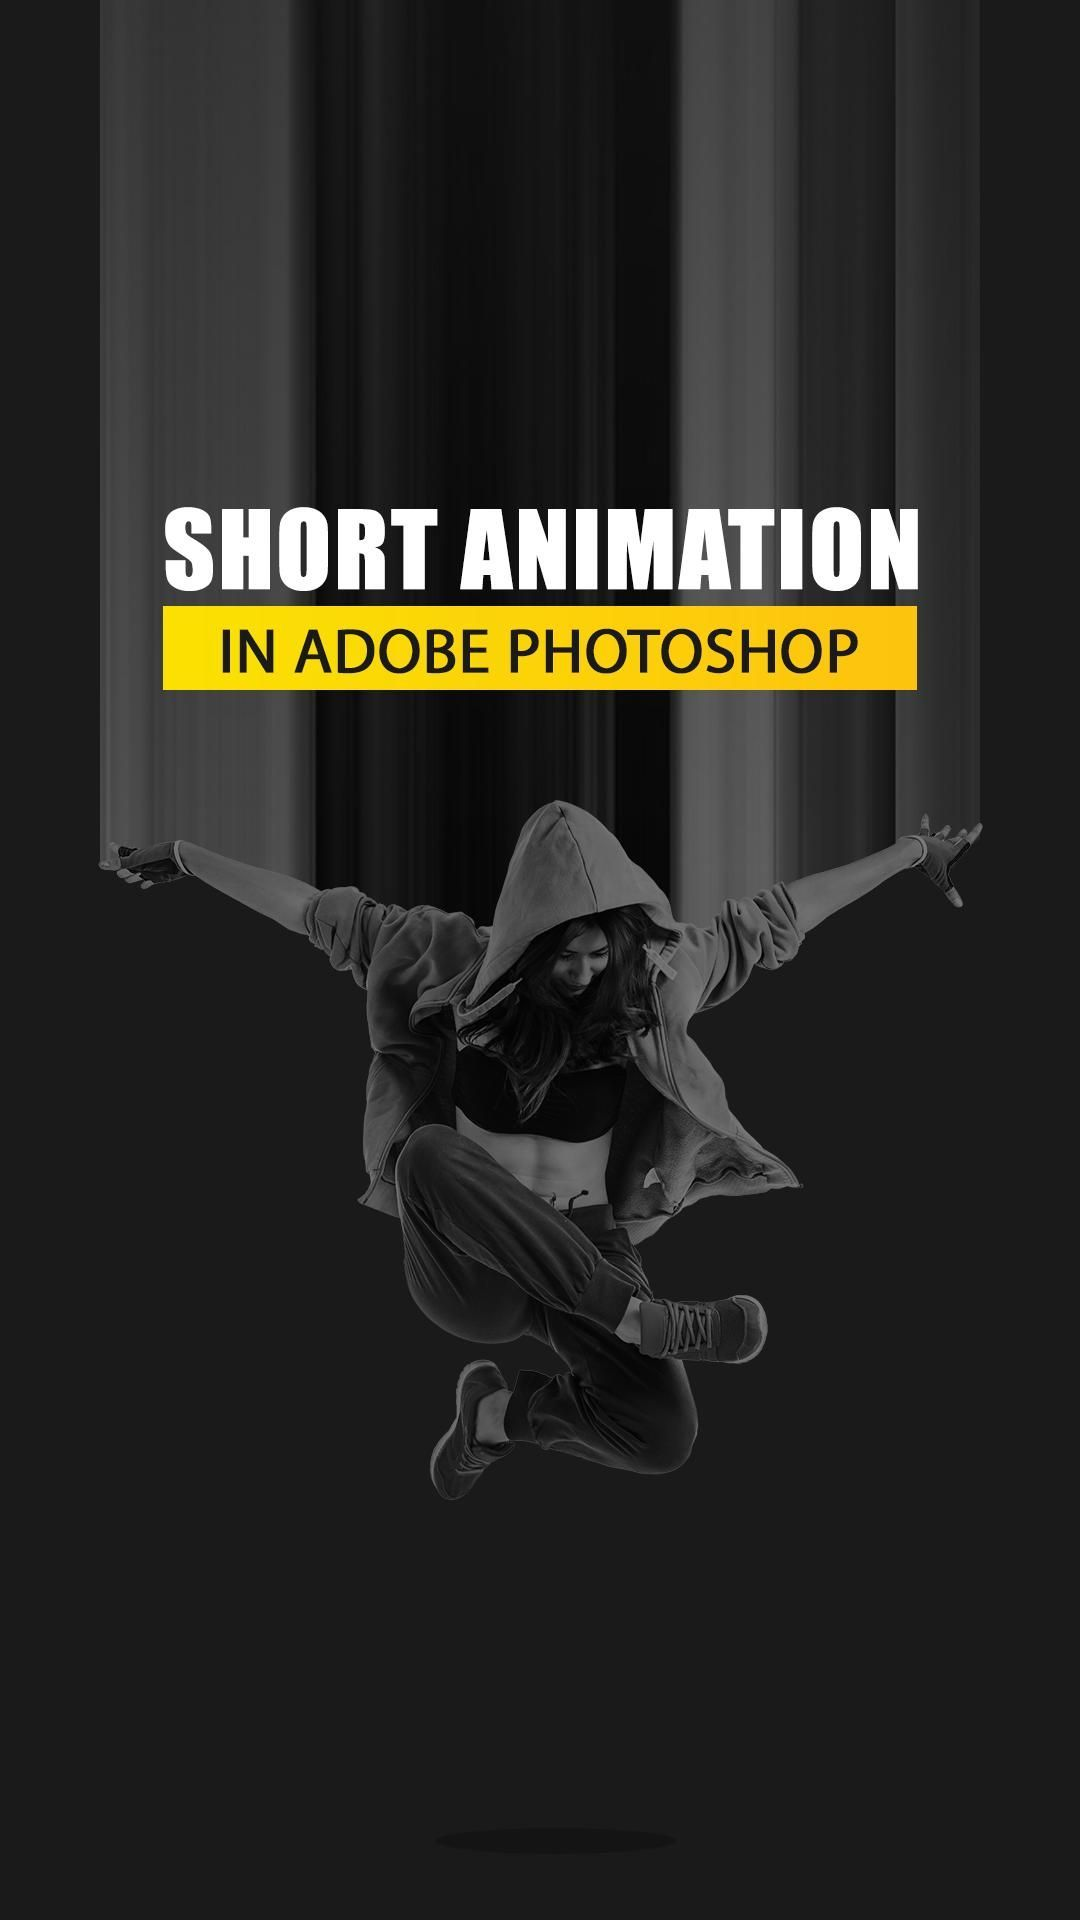 How To Animate In Photoshop In 2021 Animation In Photoshop Photoshop Animation Tutorial Photoshop Tutorial Graphics